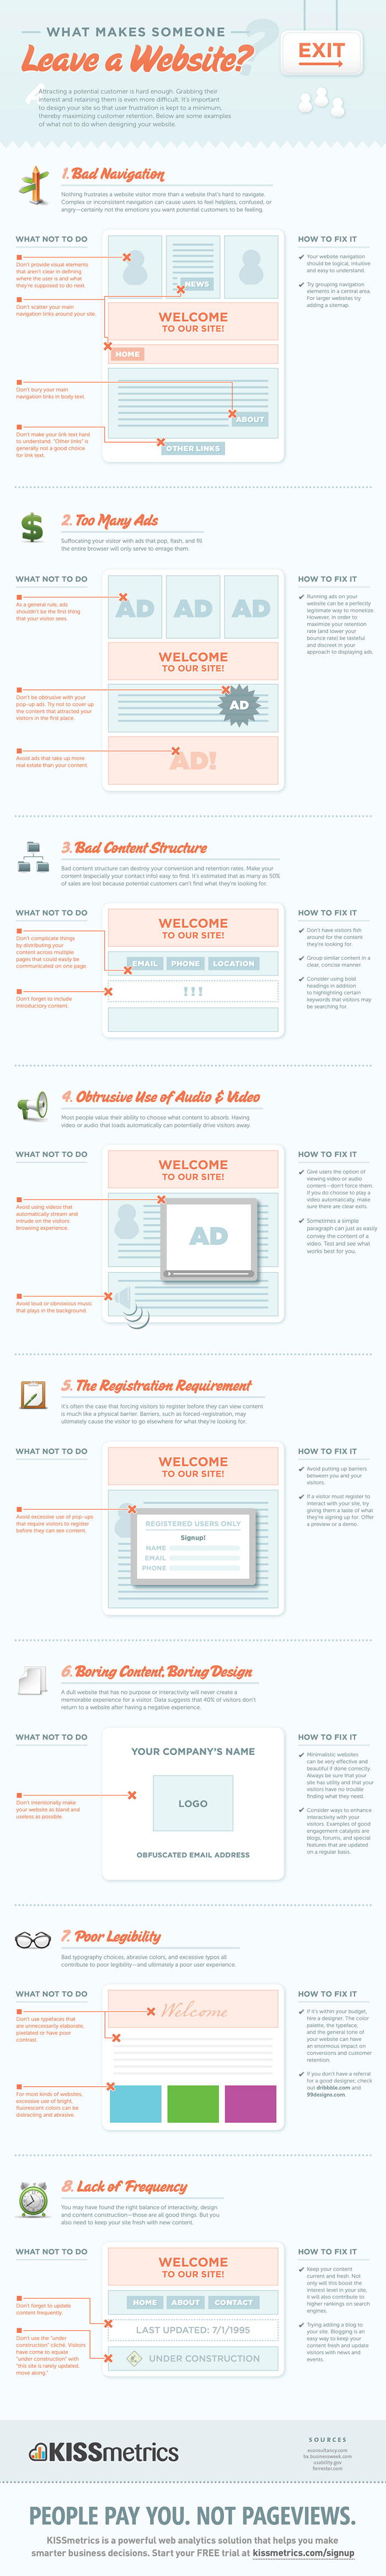 Stop People From Leaving Website Infographic